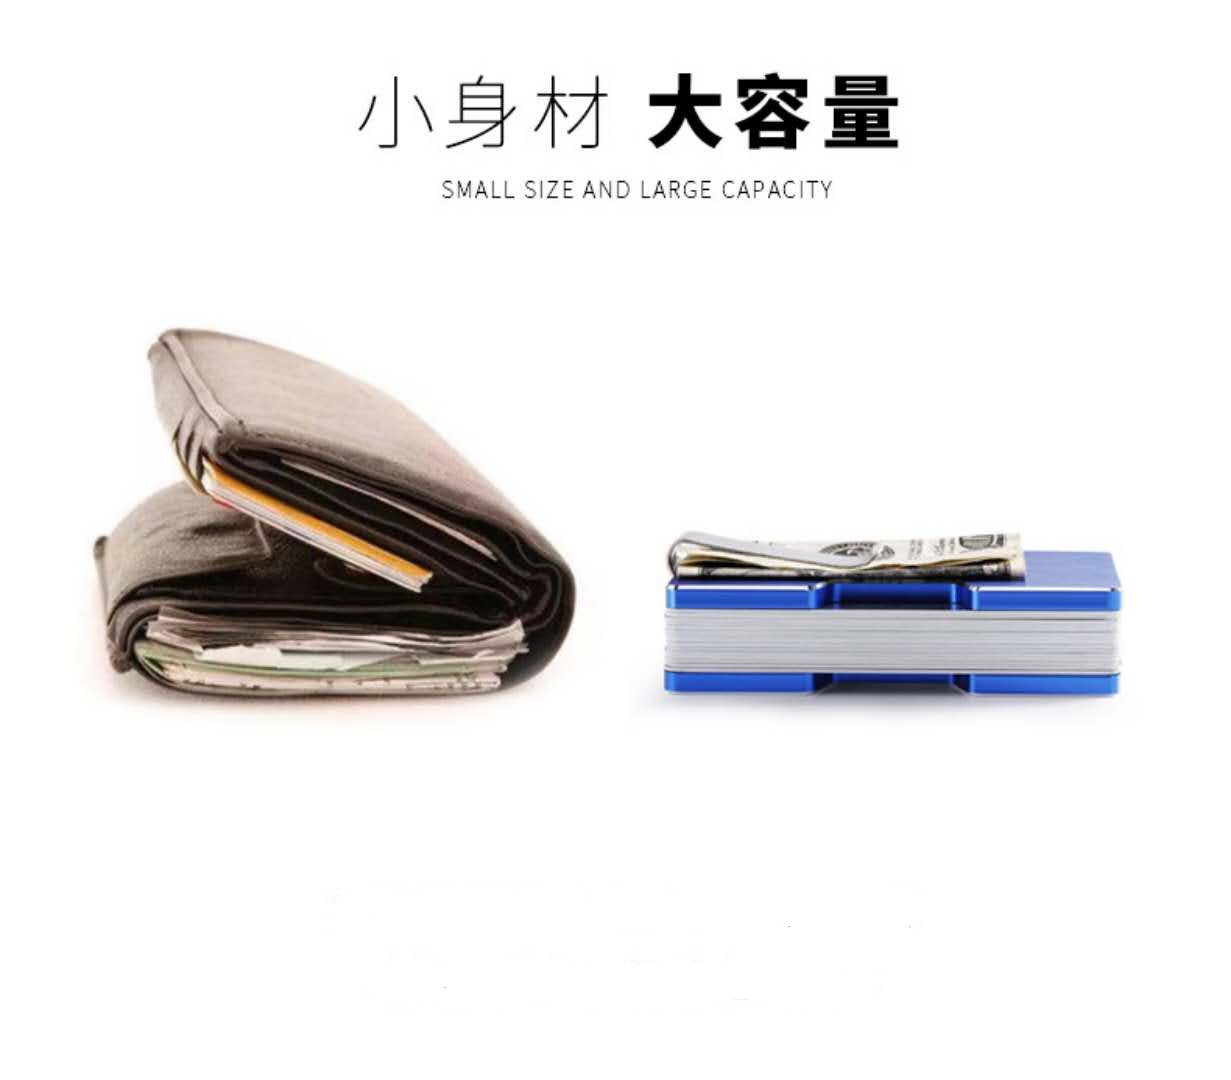 Slim aluminum RFID blocking metal credit card holder with money clip